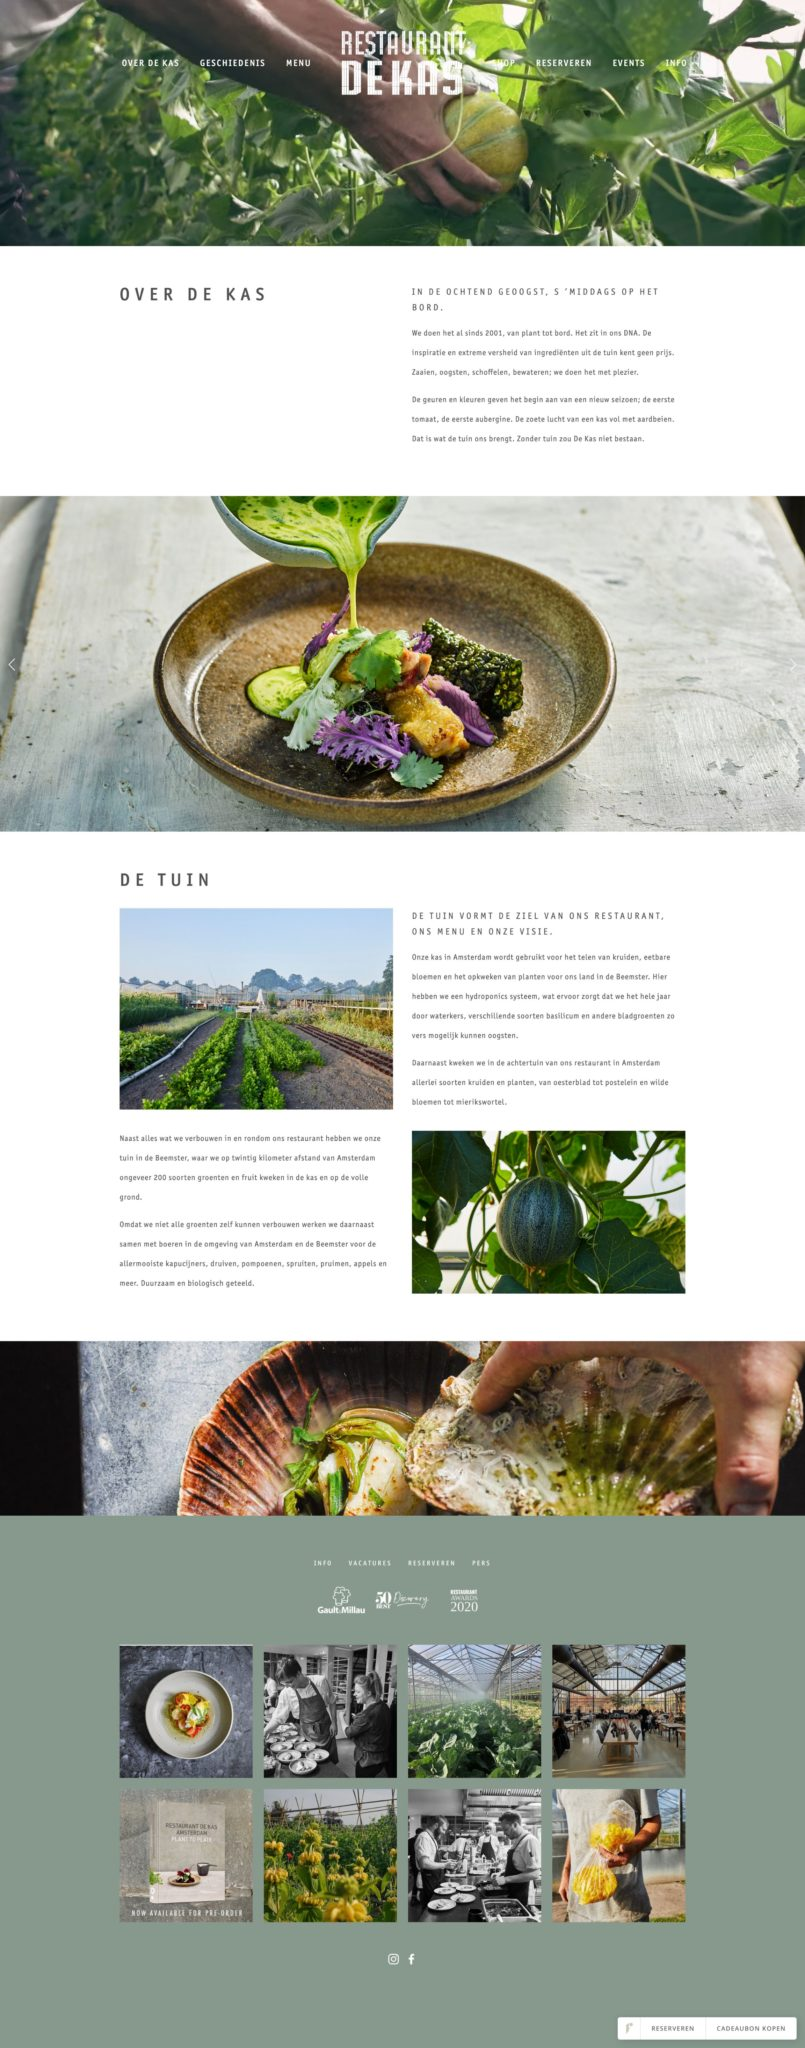 Restaurant De Kas Amsterdam Webdesign Idea July 2020